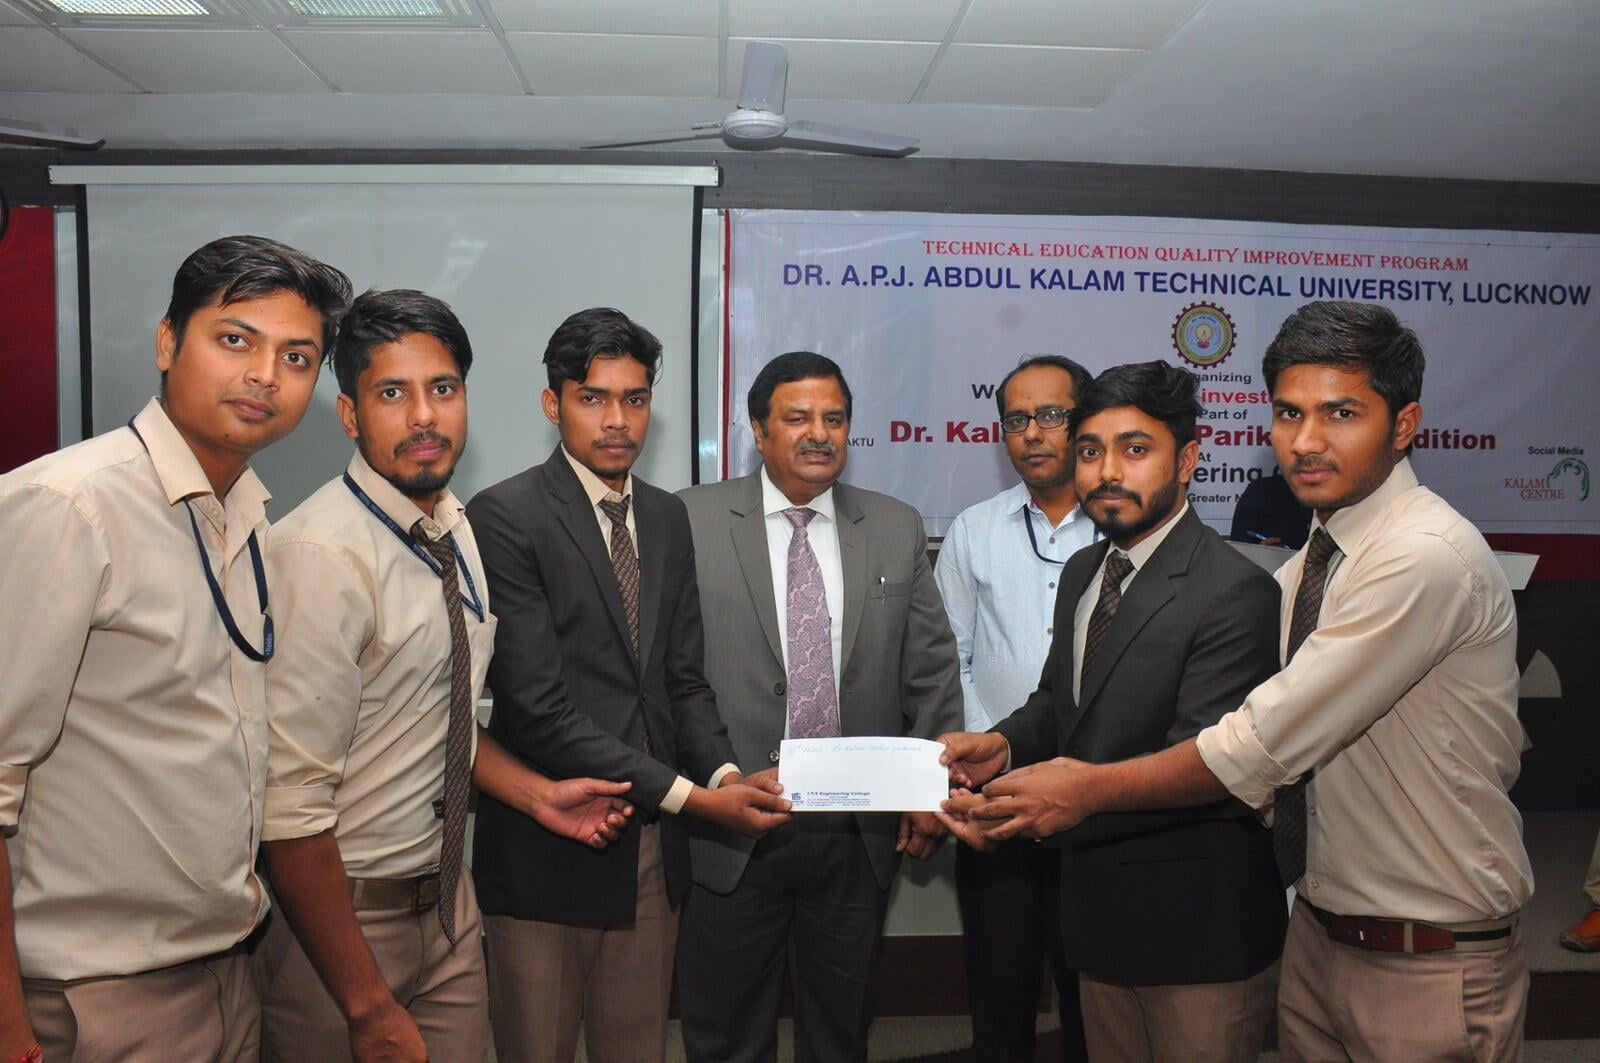 Dr. Kalam Start UP Parikarma with ITS Students